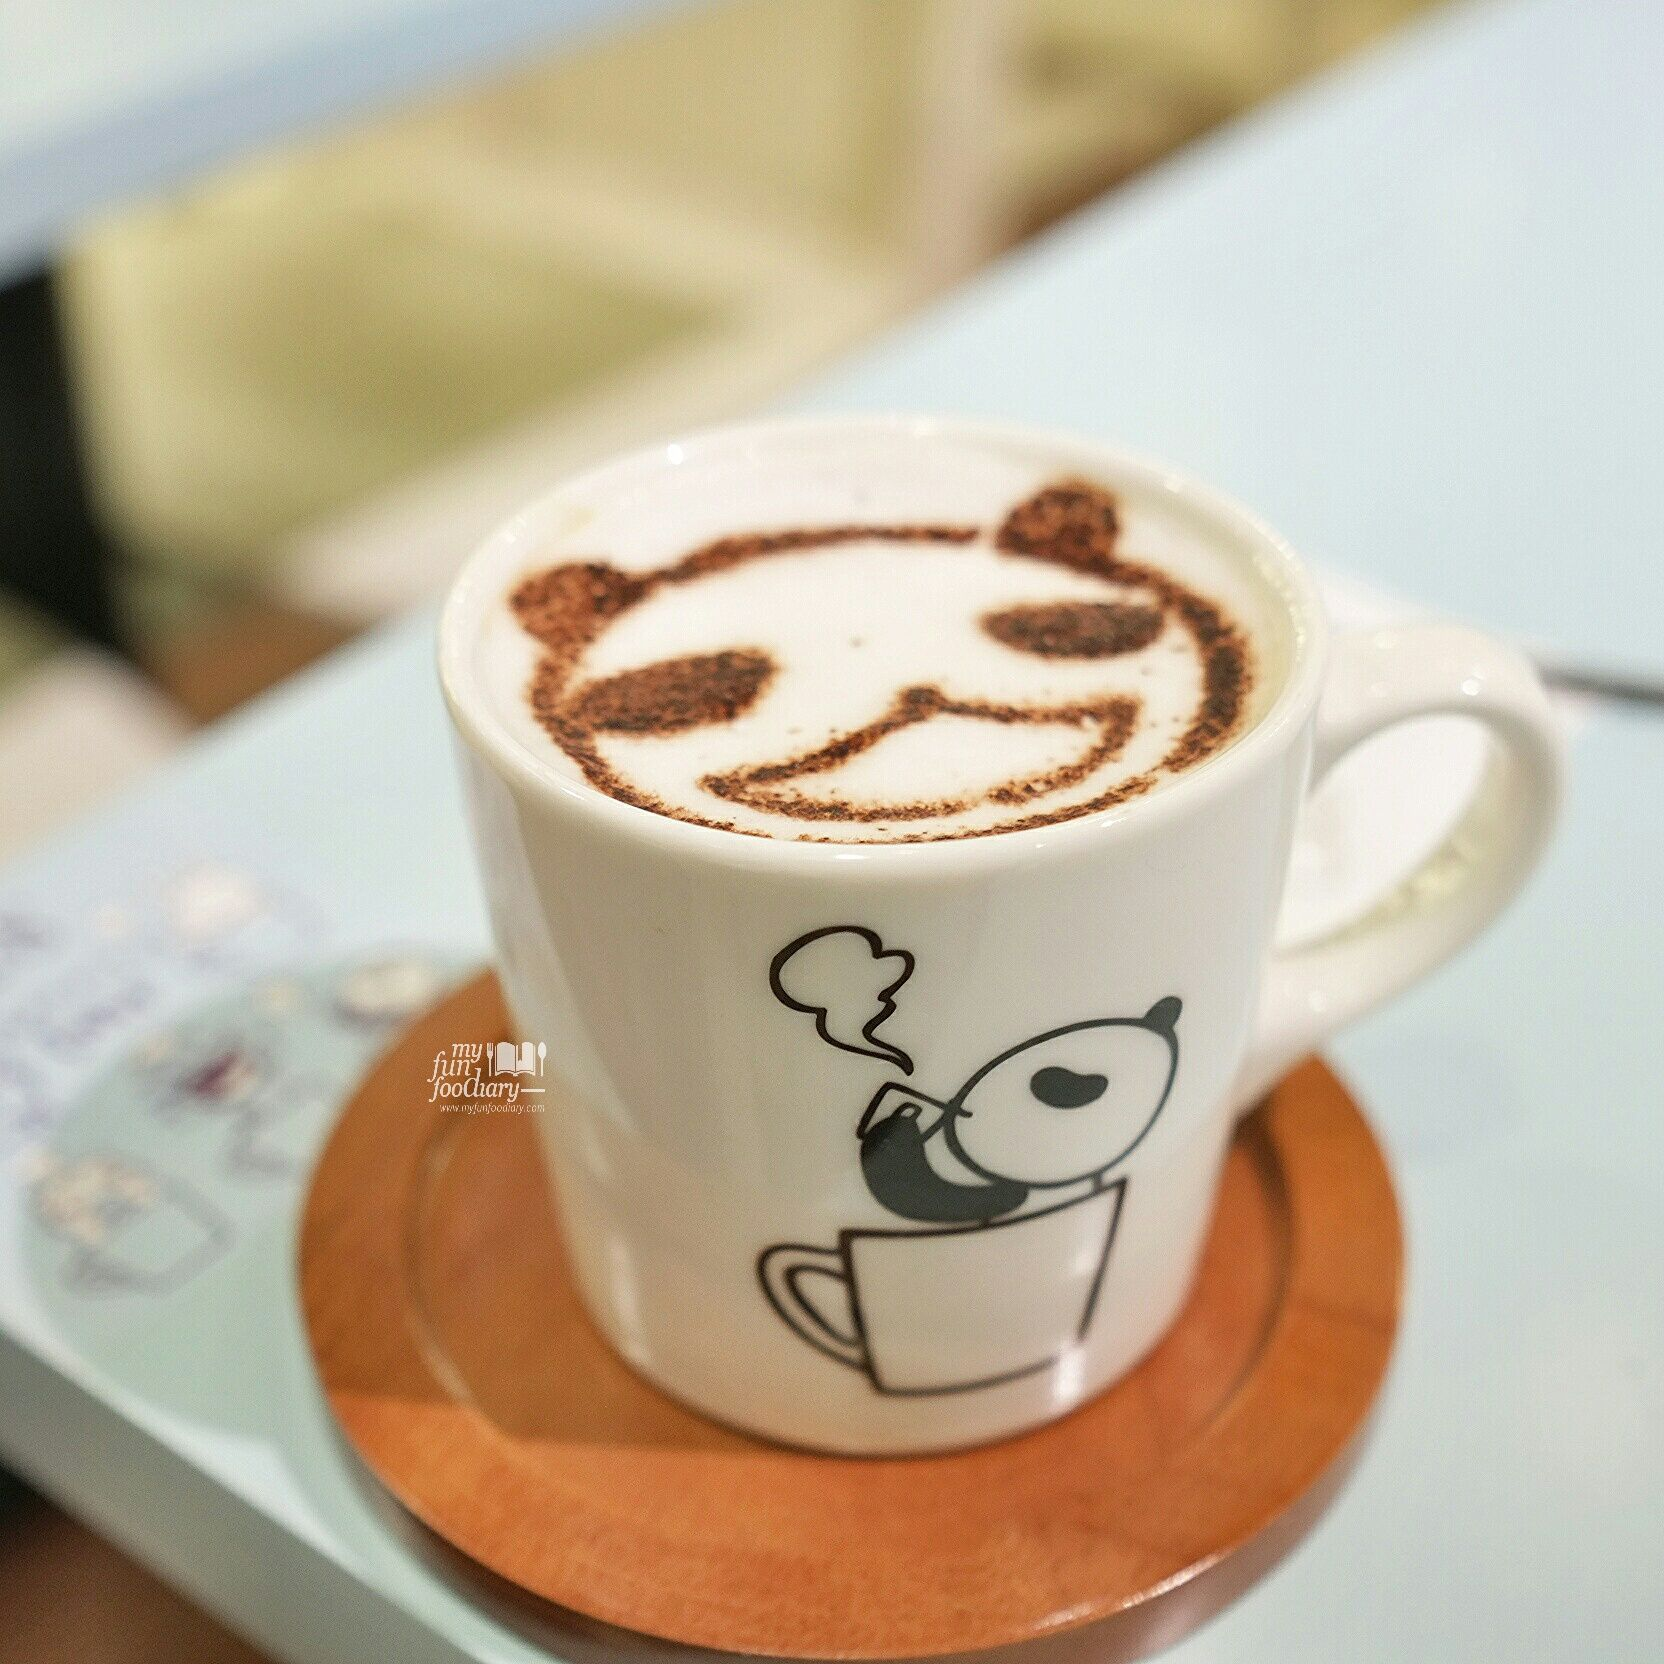 New Spot Cute Japanese Dessert Cafe From Japan Aranzi Aronzo Cafe Japanese Dessert Coffee Club 2 Coffee Tables